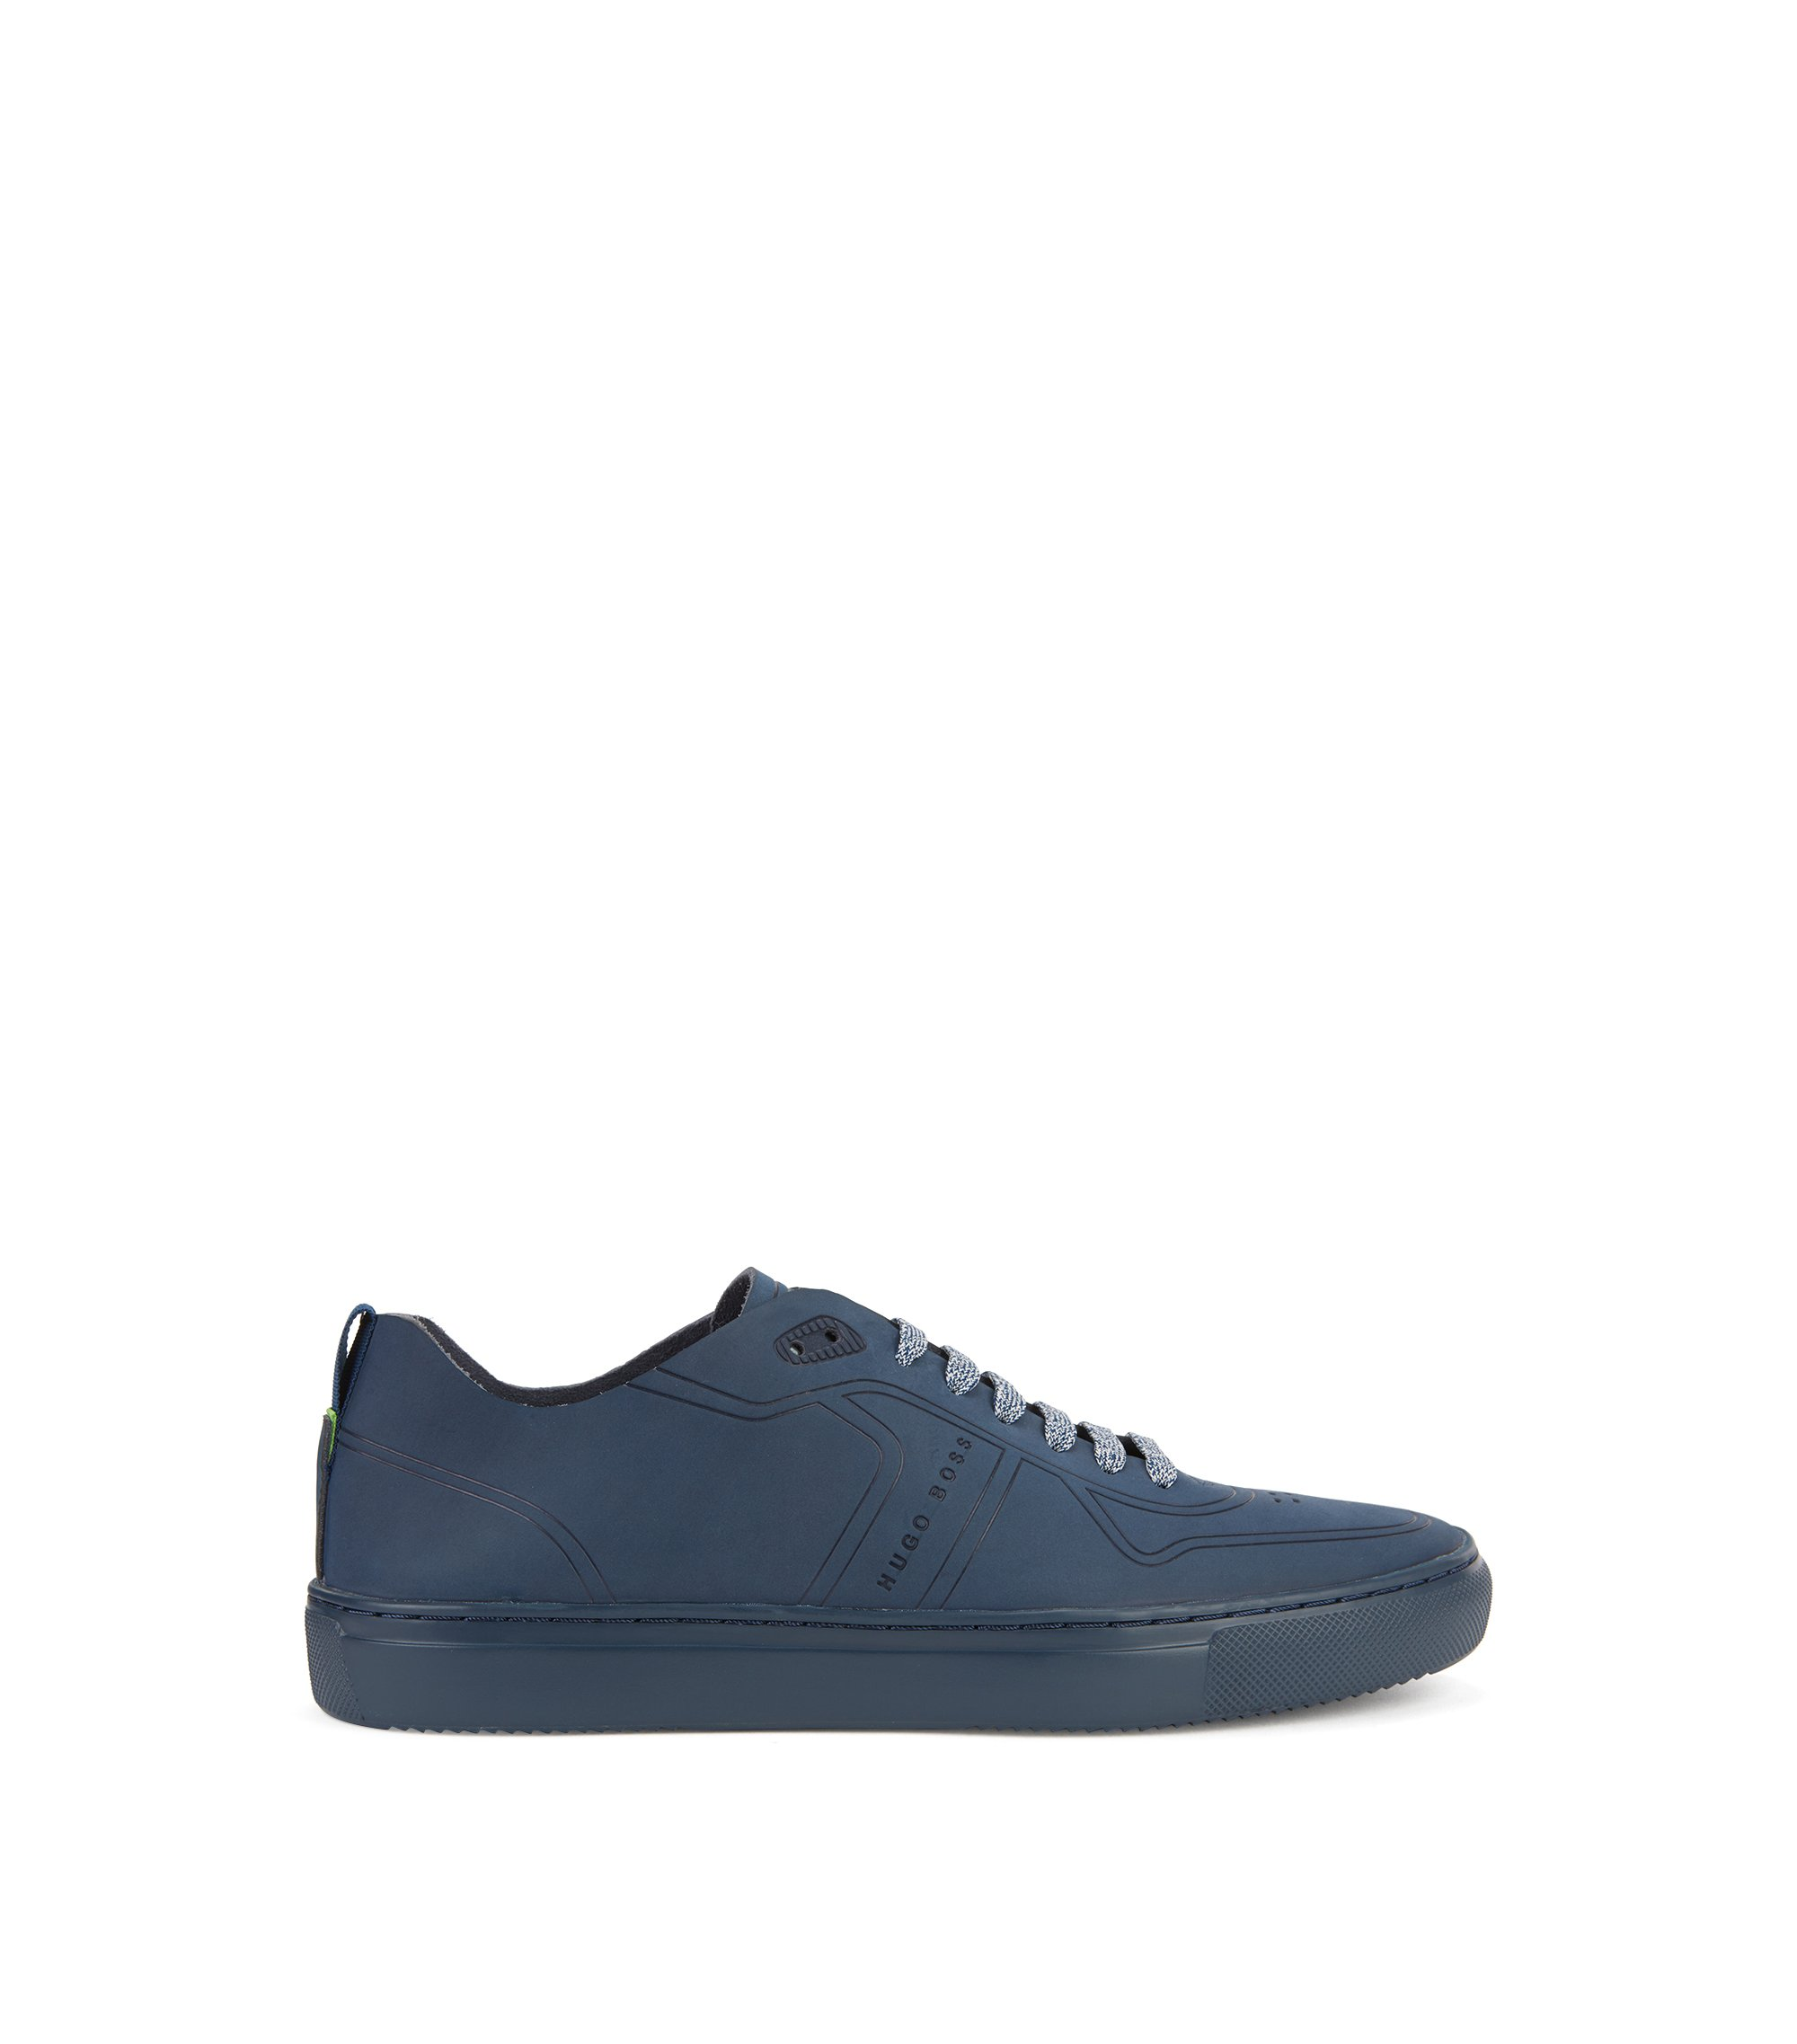 Sneakers low-top stile tennis in nabuk, Blu scuro